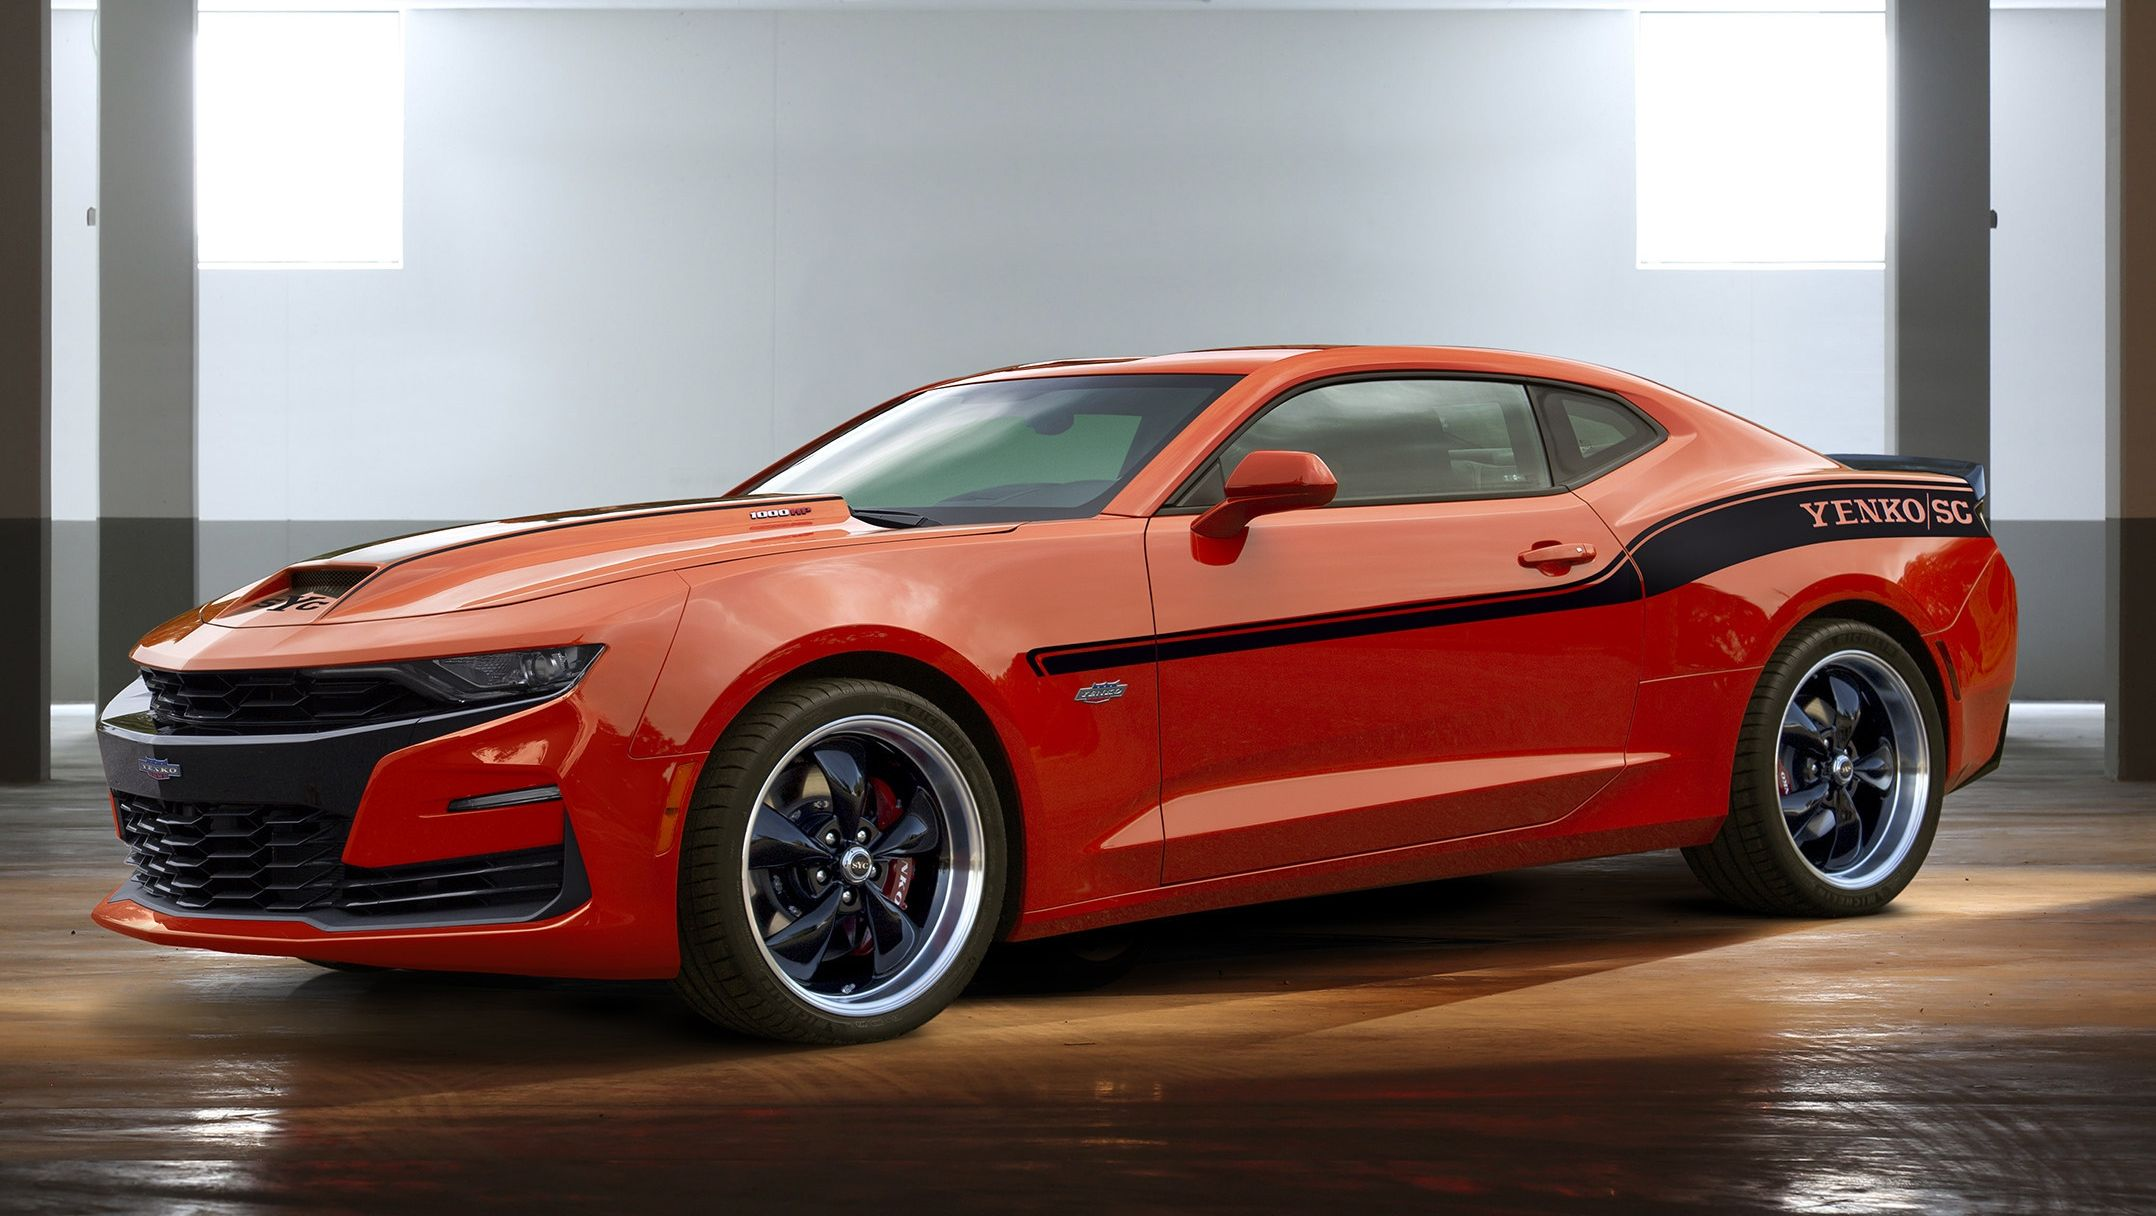 The 2019 Yenko Chevy Camaro Is A 1 000 Hp Monstrosity Of A Muscle